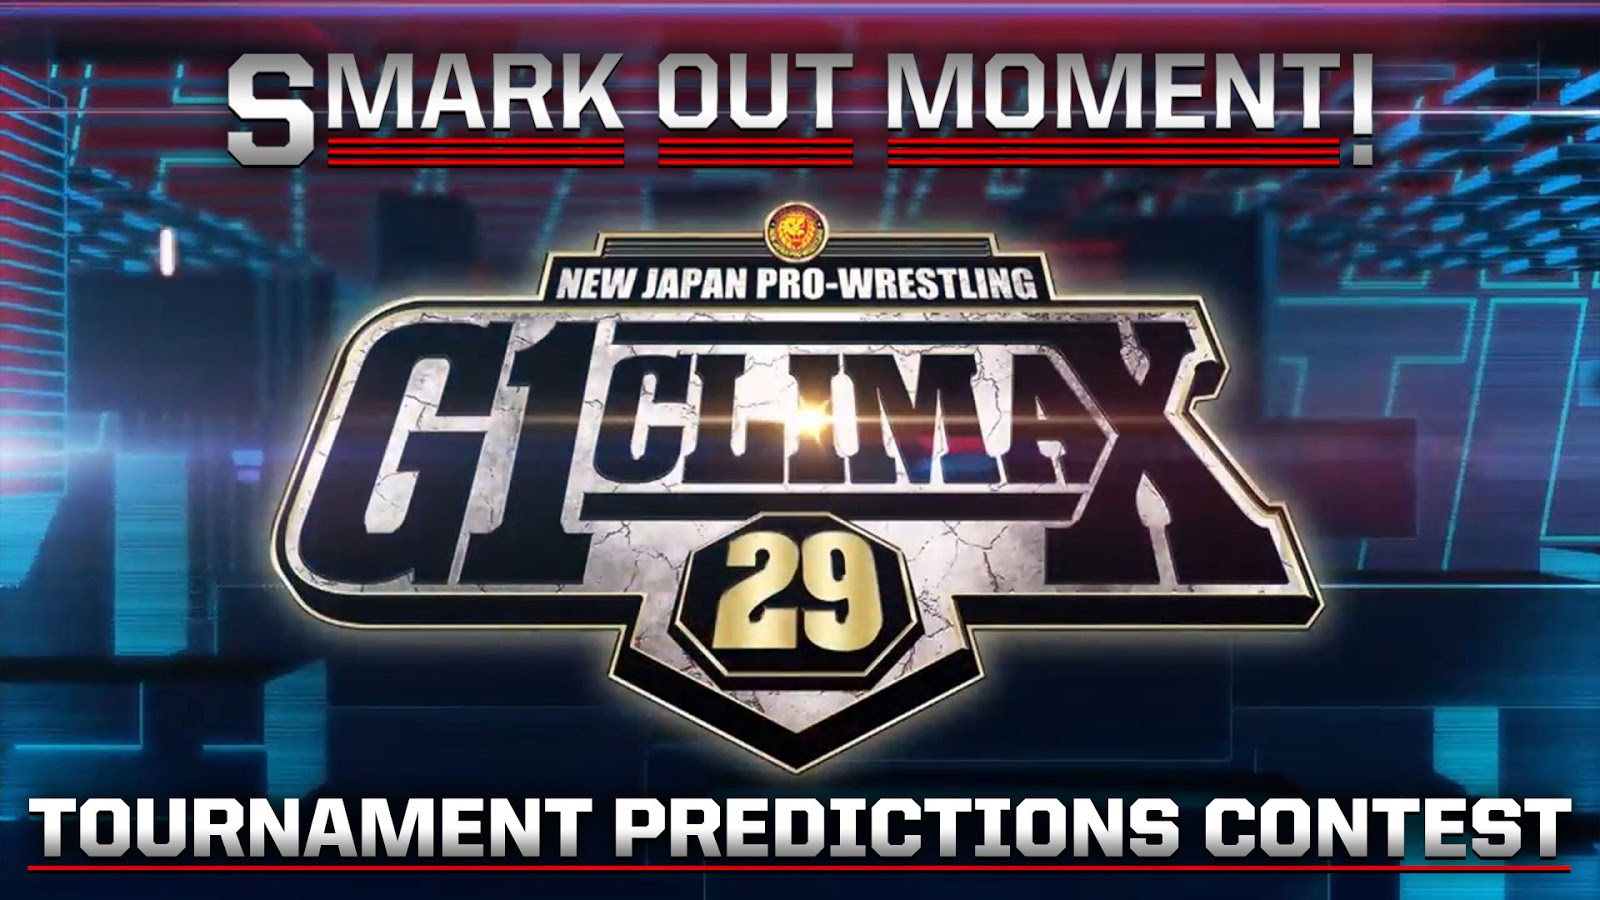 G1 Climax 29 New Japan Pro Wrestling